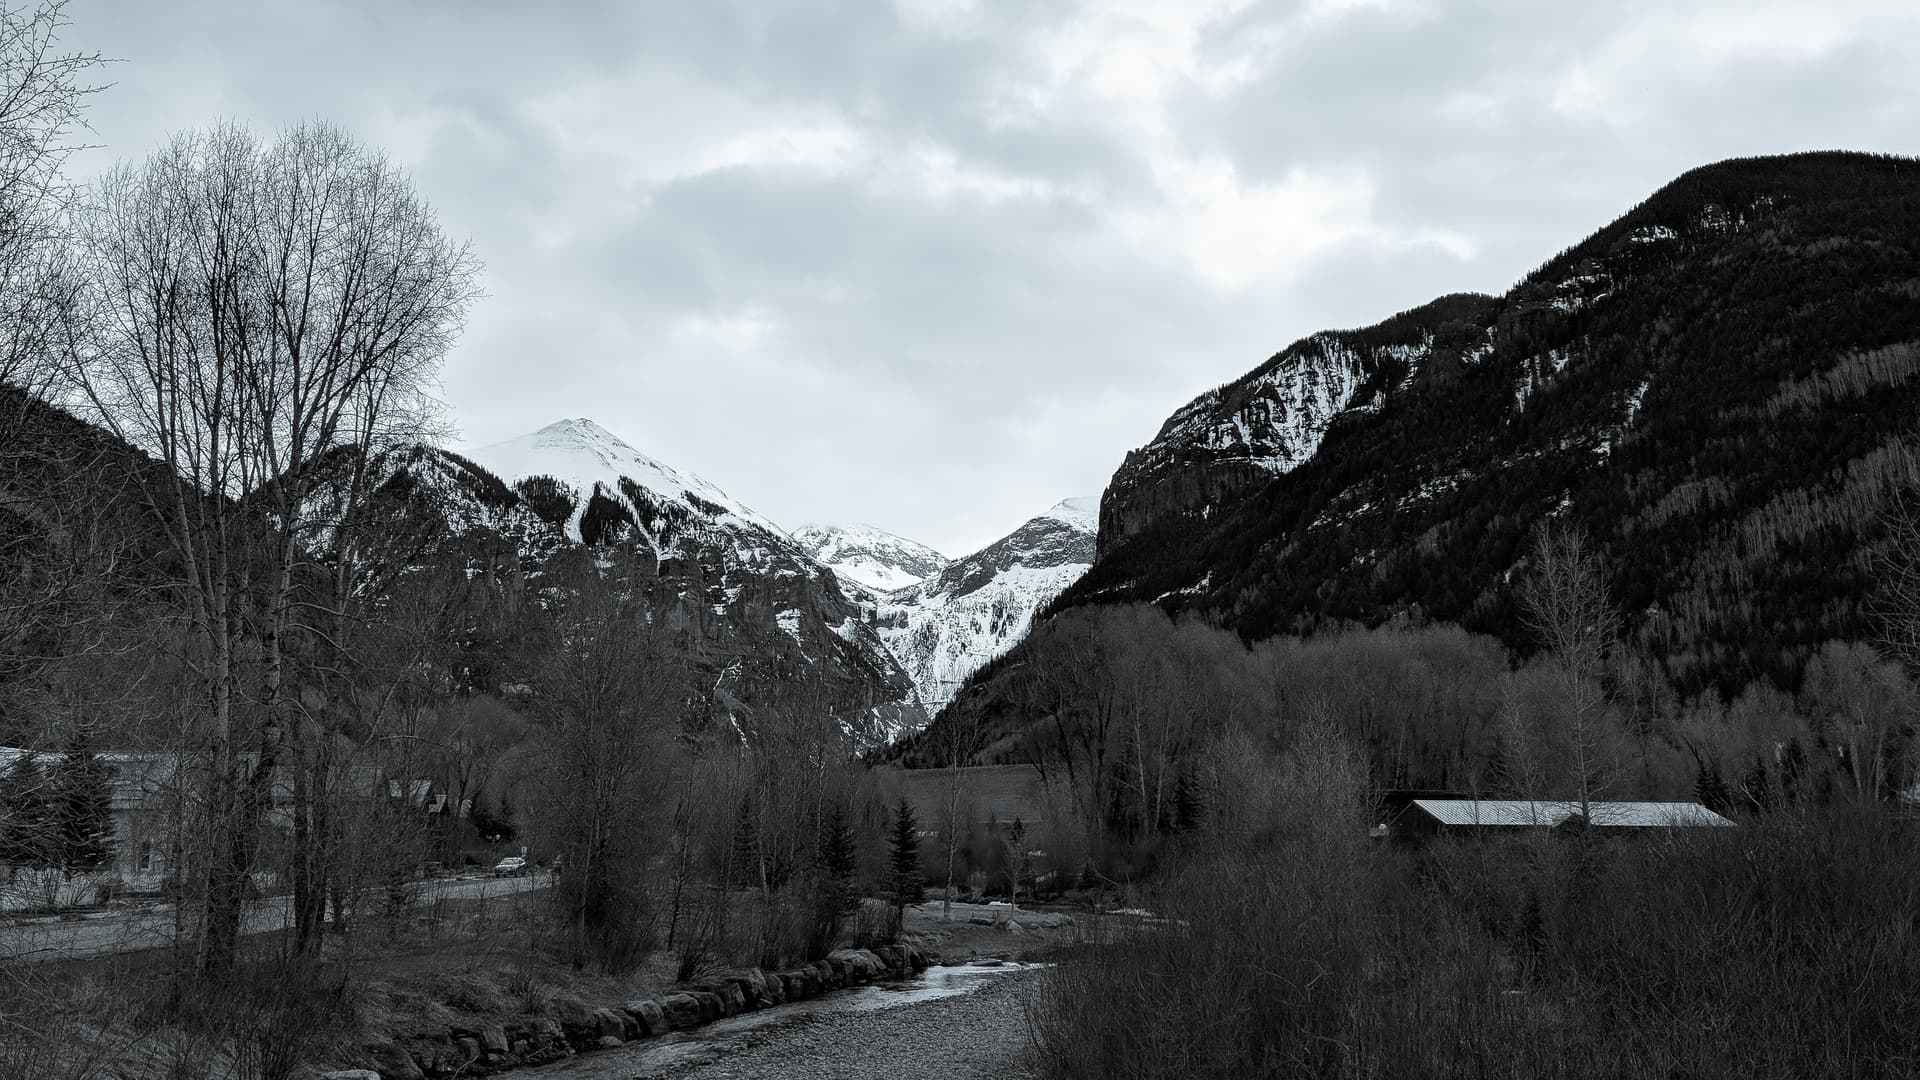 A black-and-white photo of a tree-lined mountain creek. Beyond the trees, three distinctly triangular snow-capped peaks can be seen.